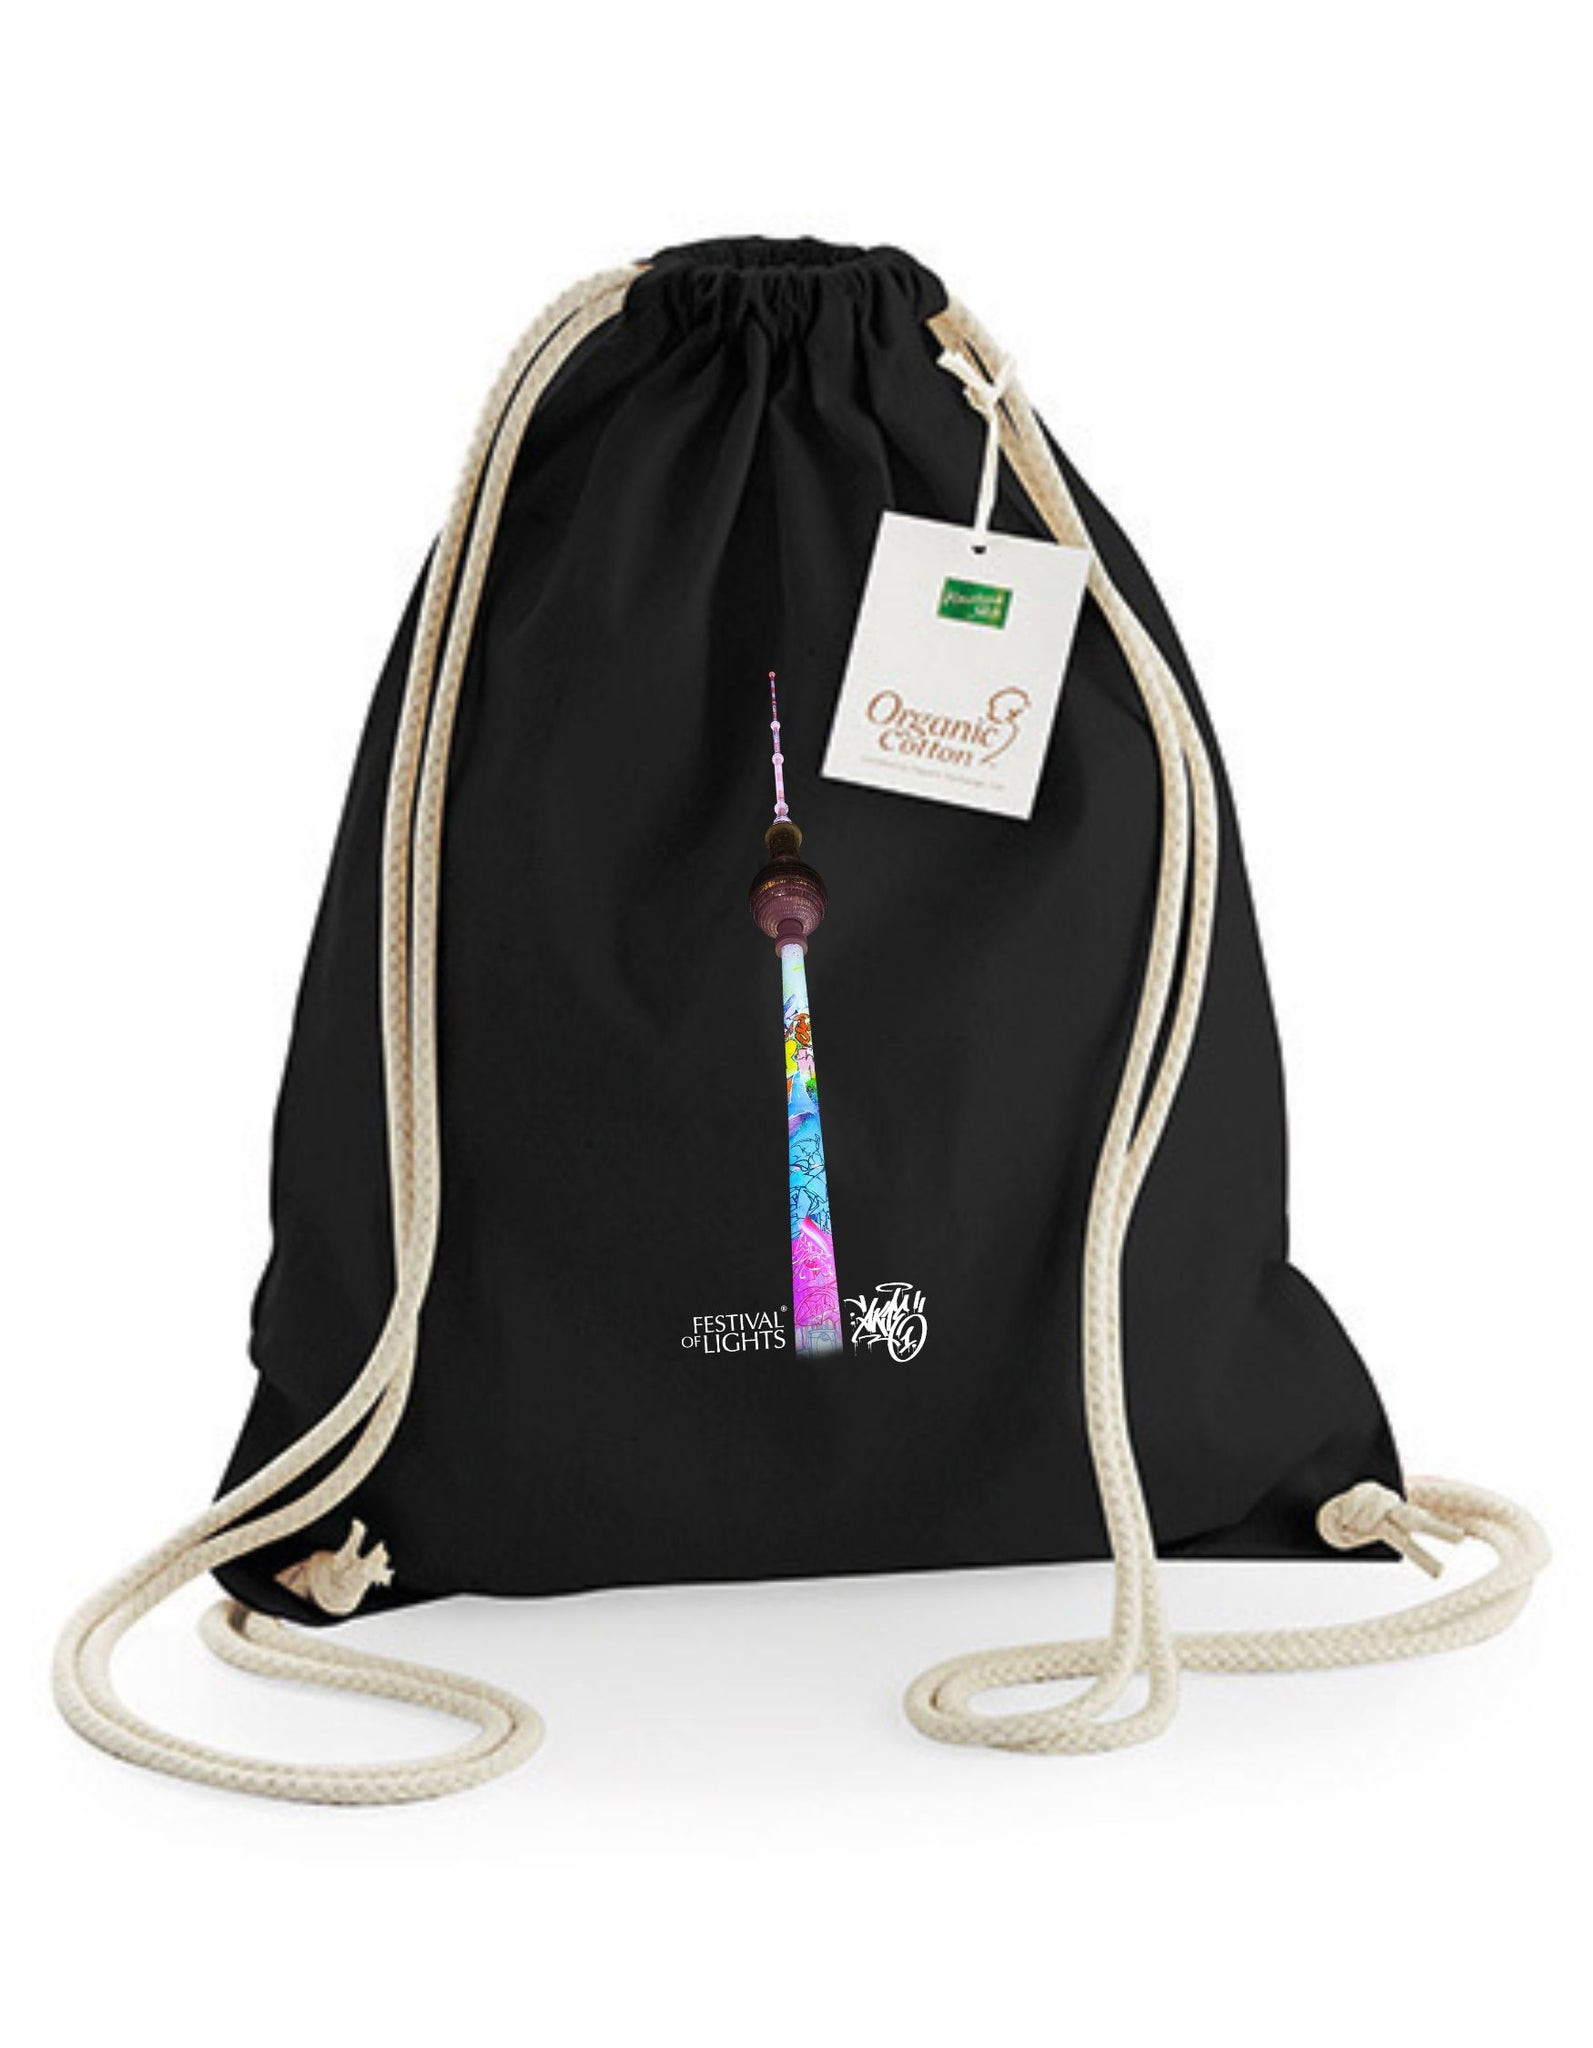 SOLD OUT - Rucksack - Fernsehturm AKTE ONE